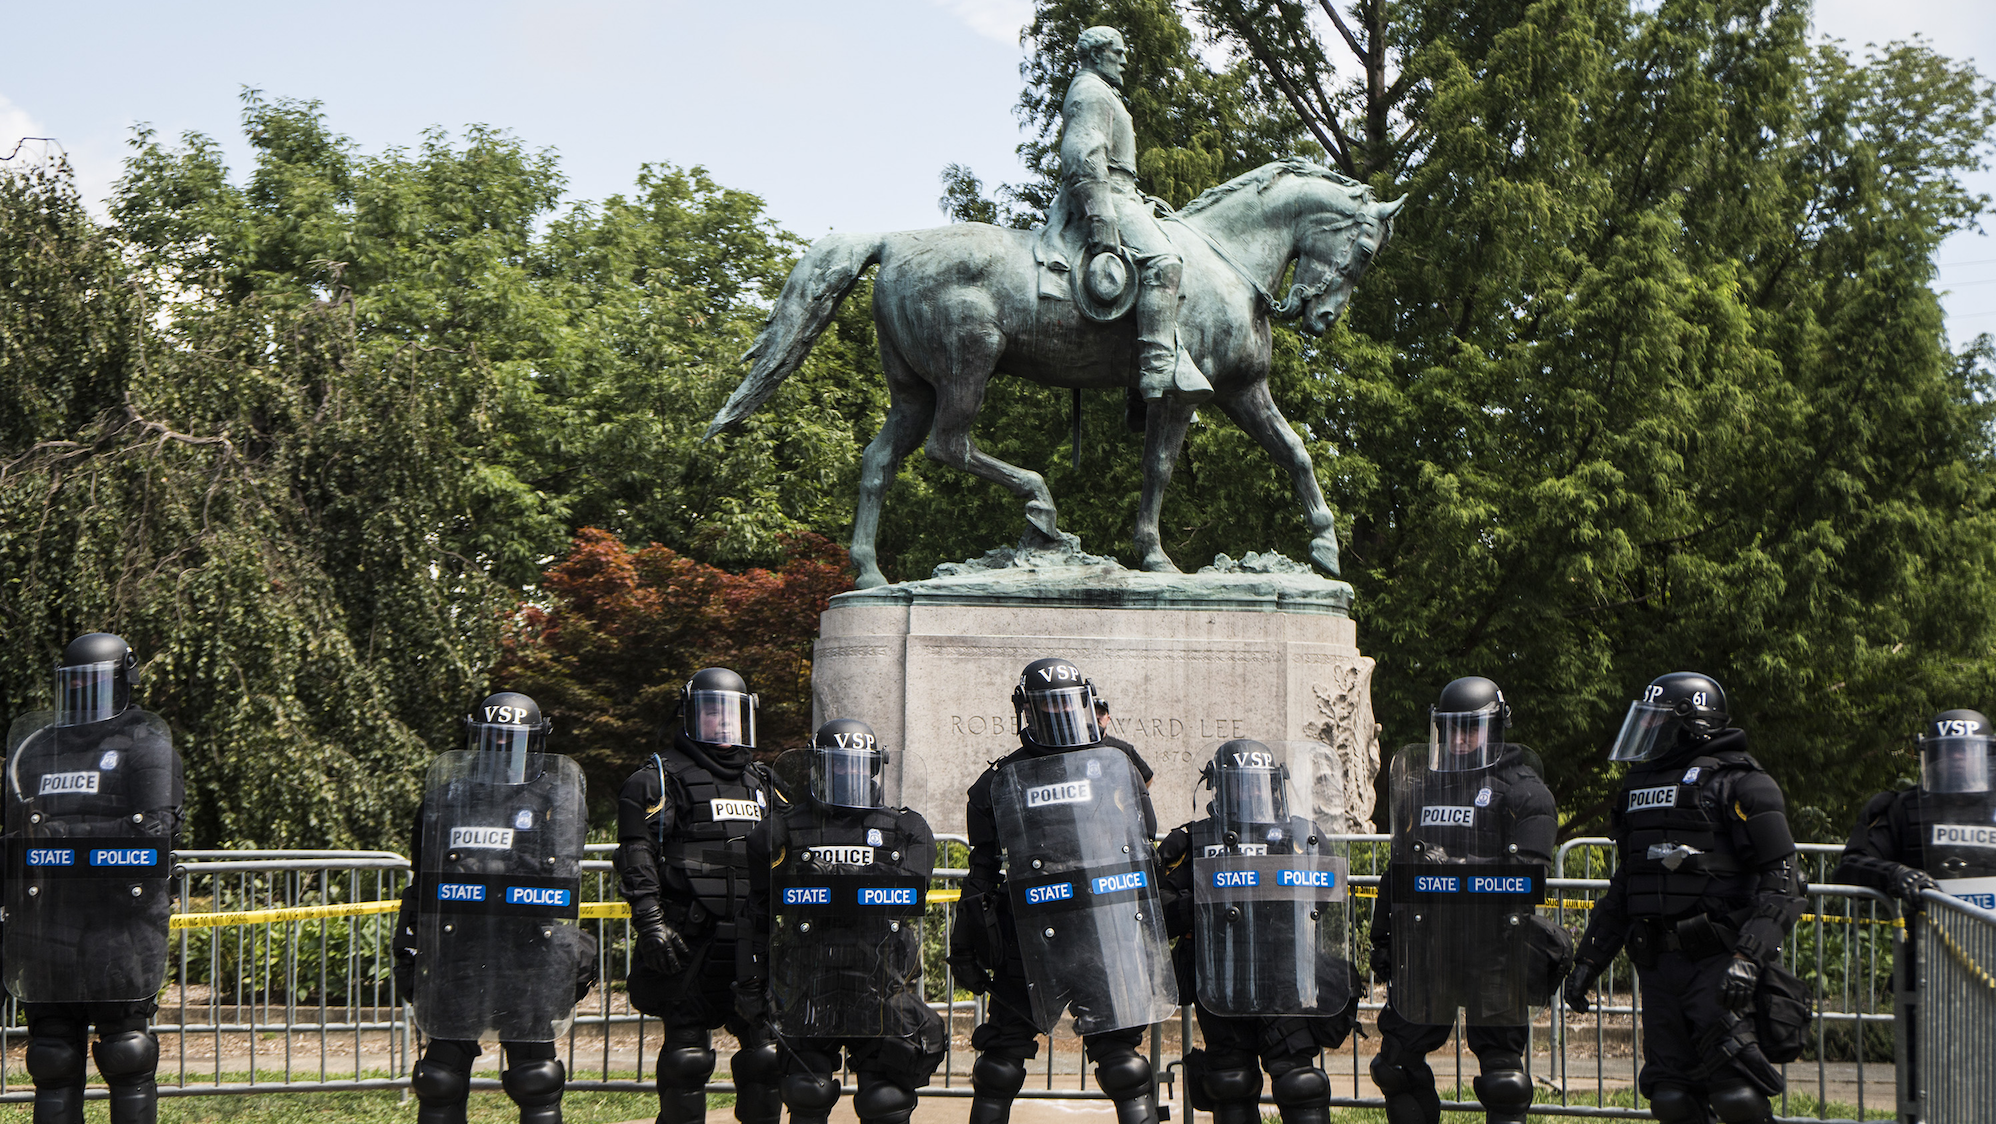 Charlottesville PD chief 'regrets' response to Saturday's protests